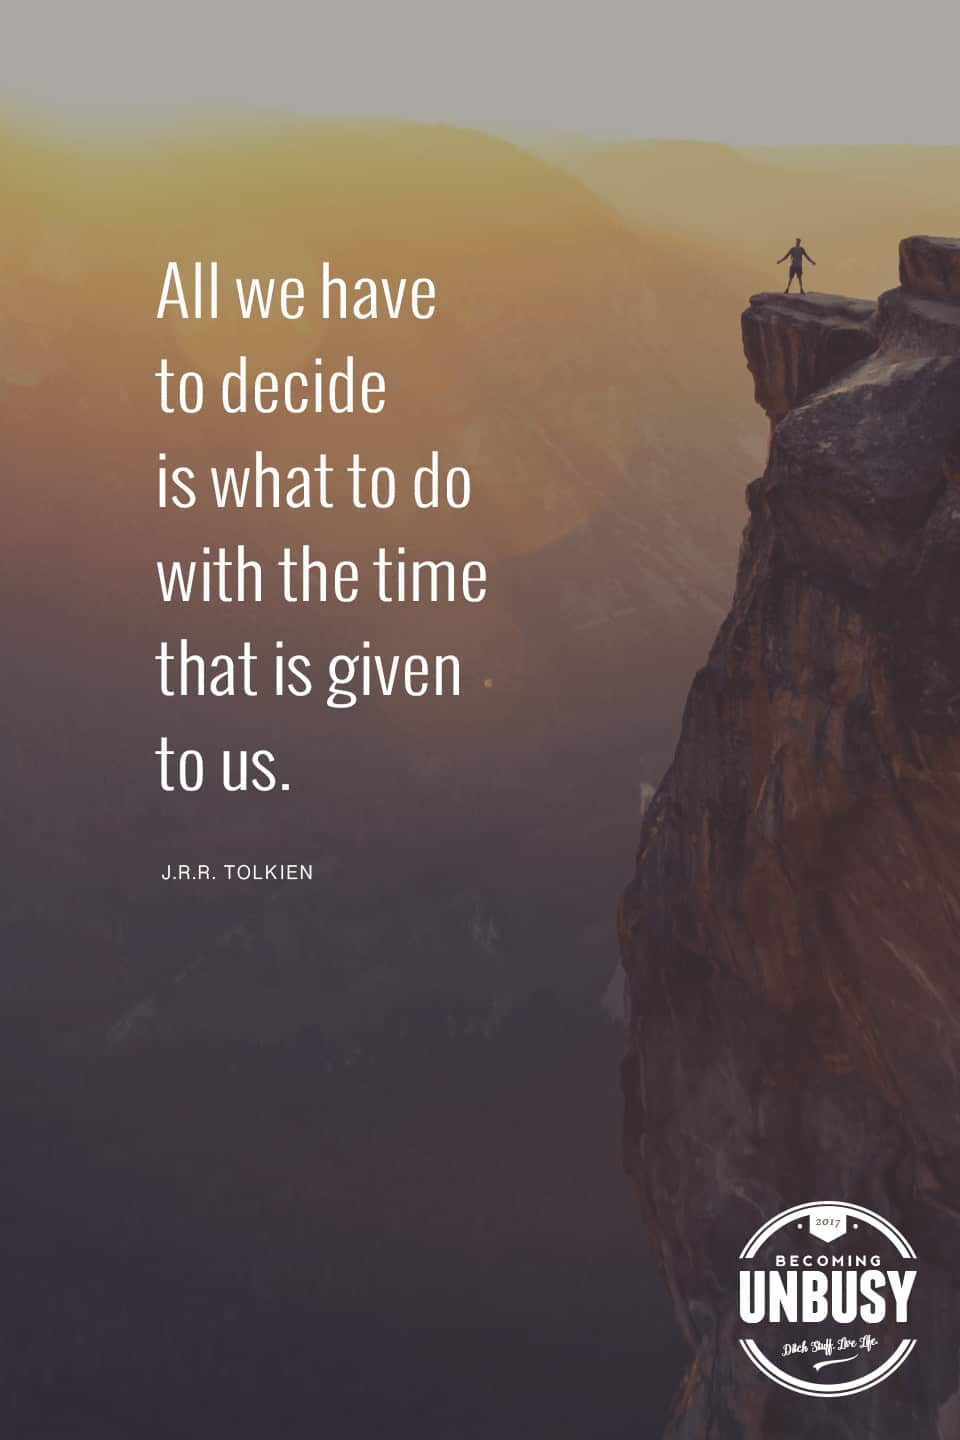 All we have to do is decide what to do with the time that is given to us. - Tolkein *Love this quote, these life list ideas and this Becoming UnBusy site.